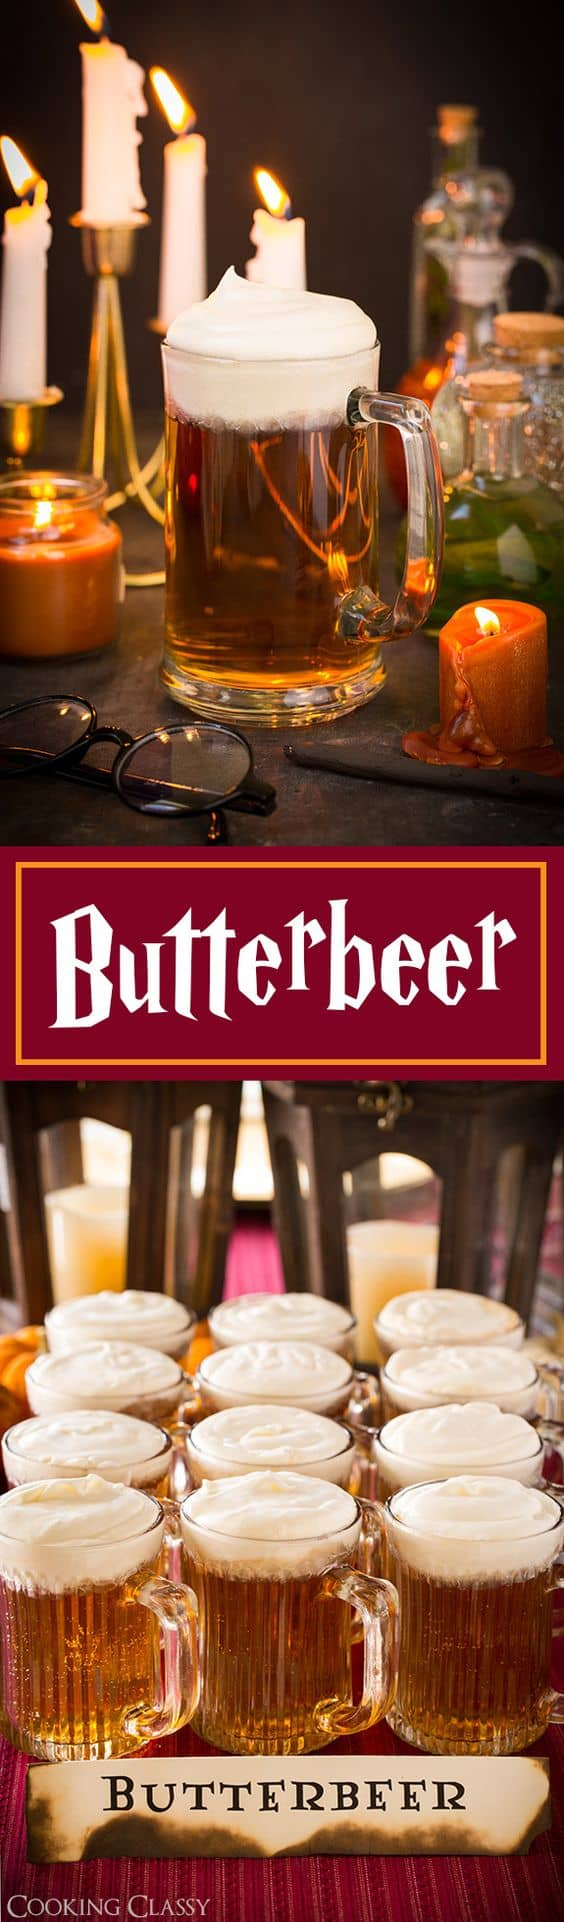 Take me to Hogwarts, Harry Potter! Come with me! Here's the recipe for butterbeer!